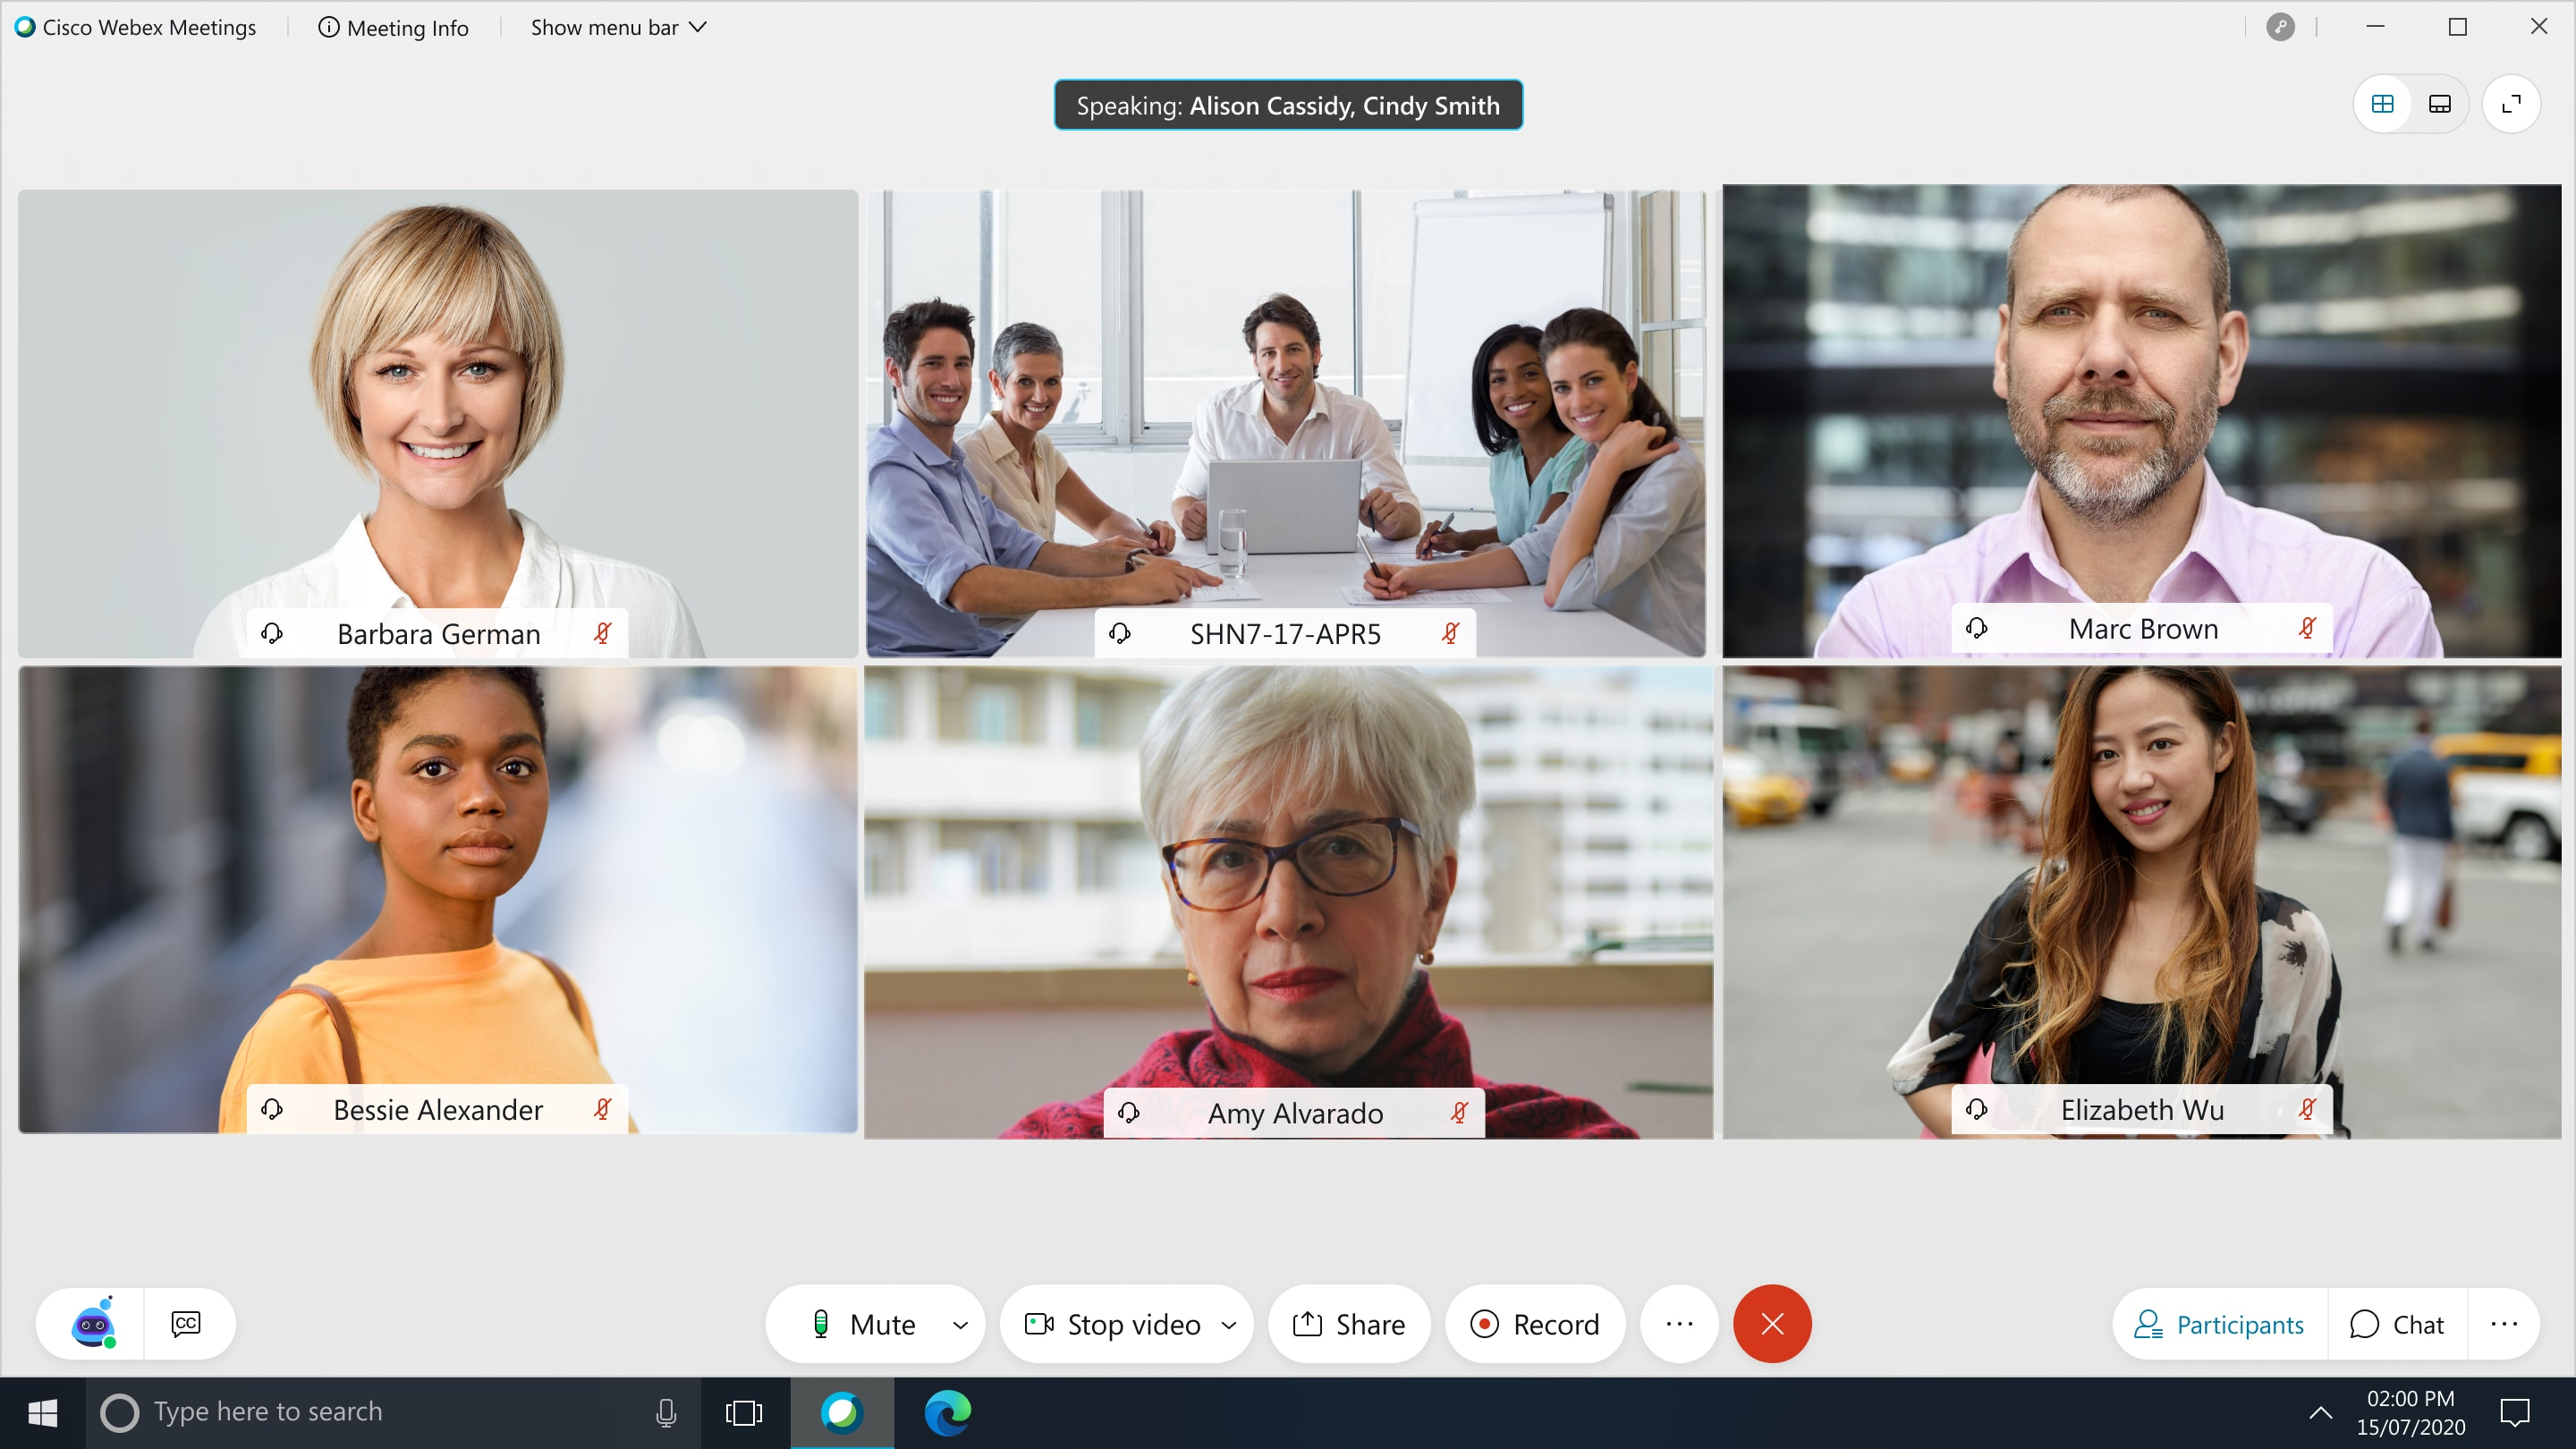 Updated Webex interface showing persistent buttons at the bottom of the screen.